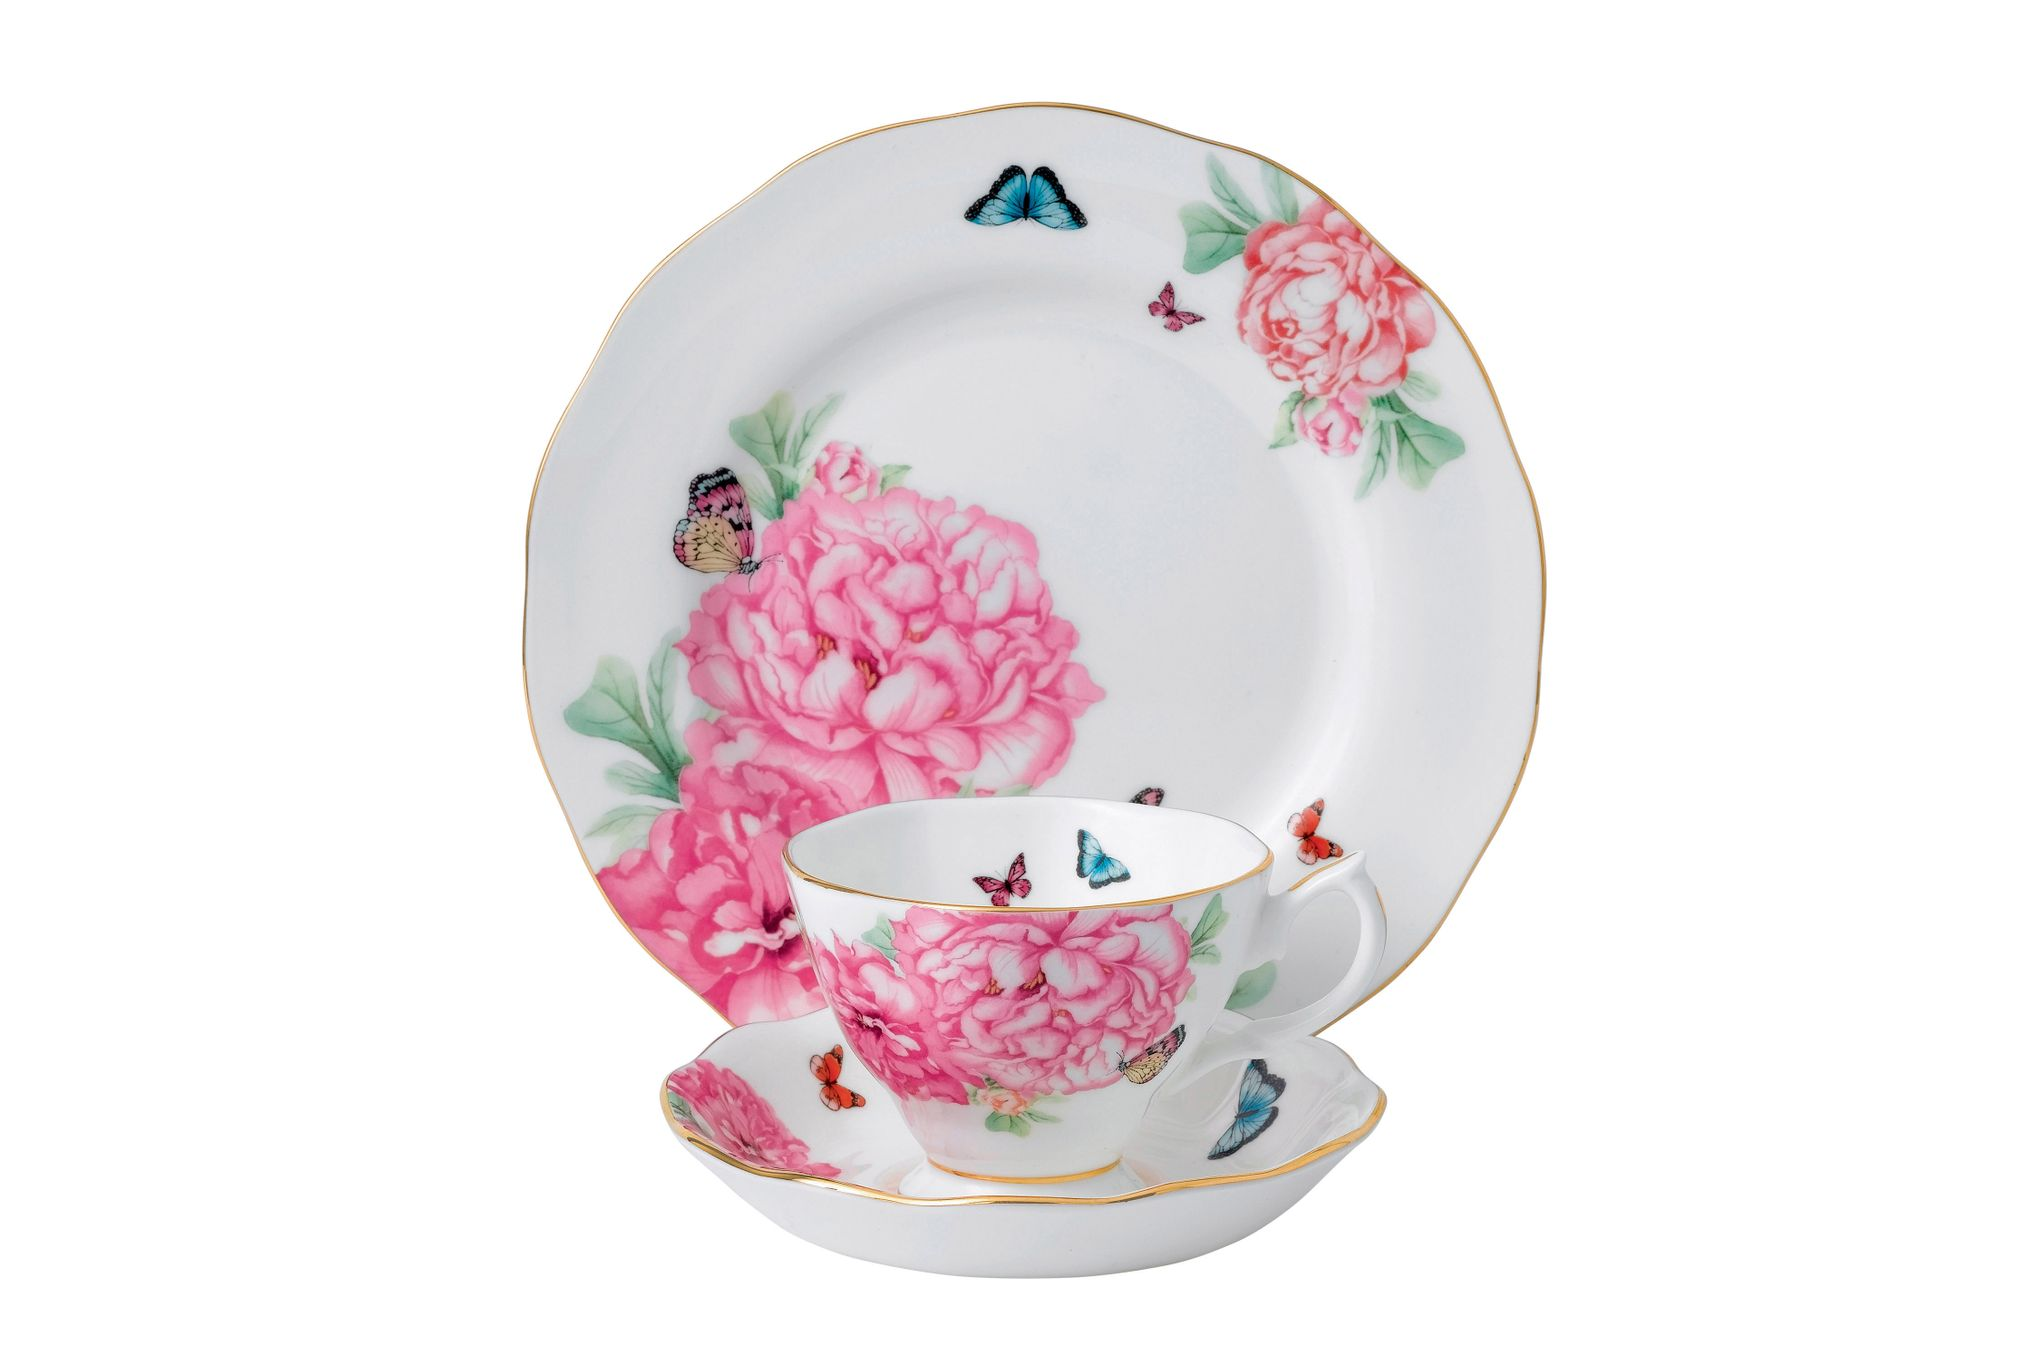 Miranda Kerr for Royal Albert Friendship 3 Piece Set Teacup, Saucer, Plate 20cm Friendship thumb 1